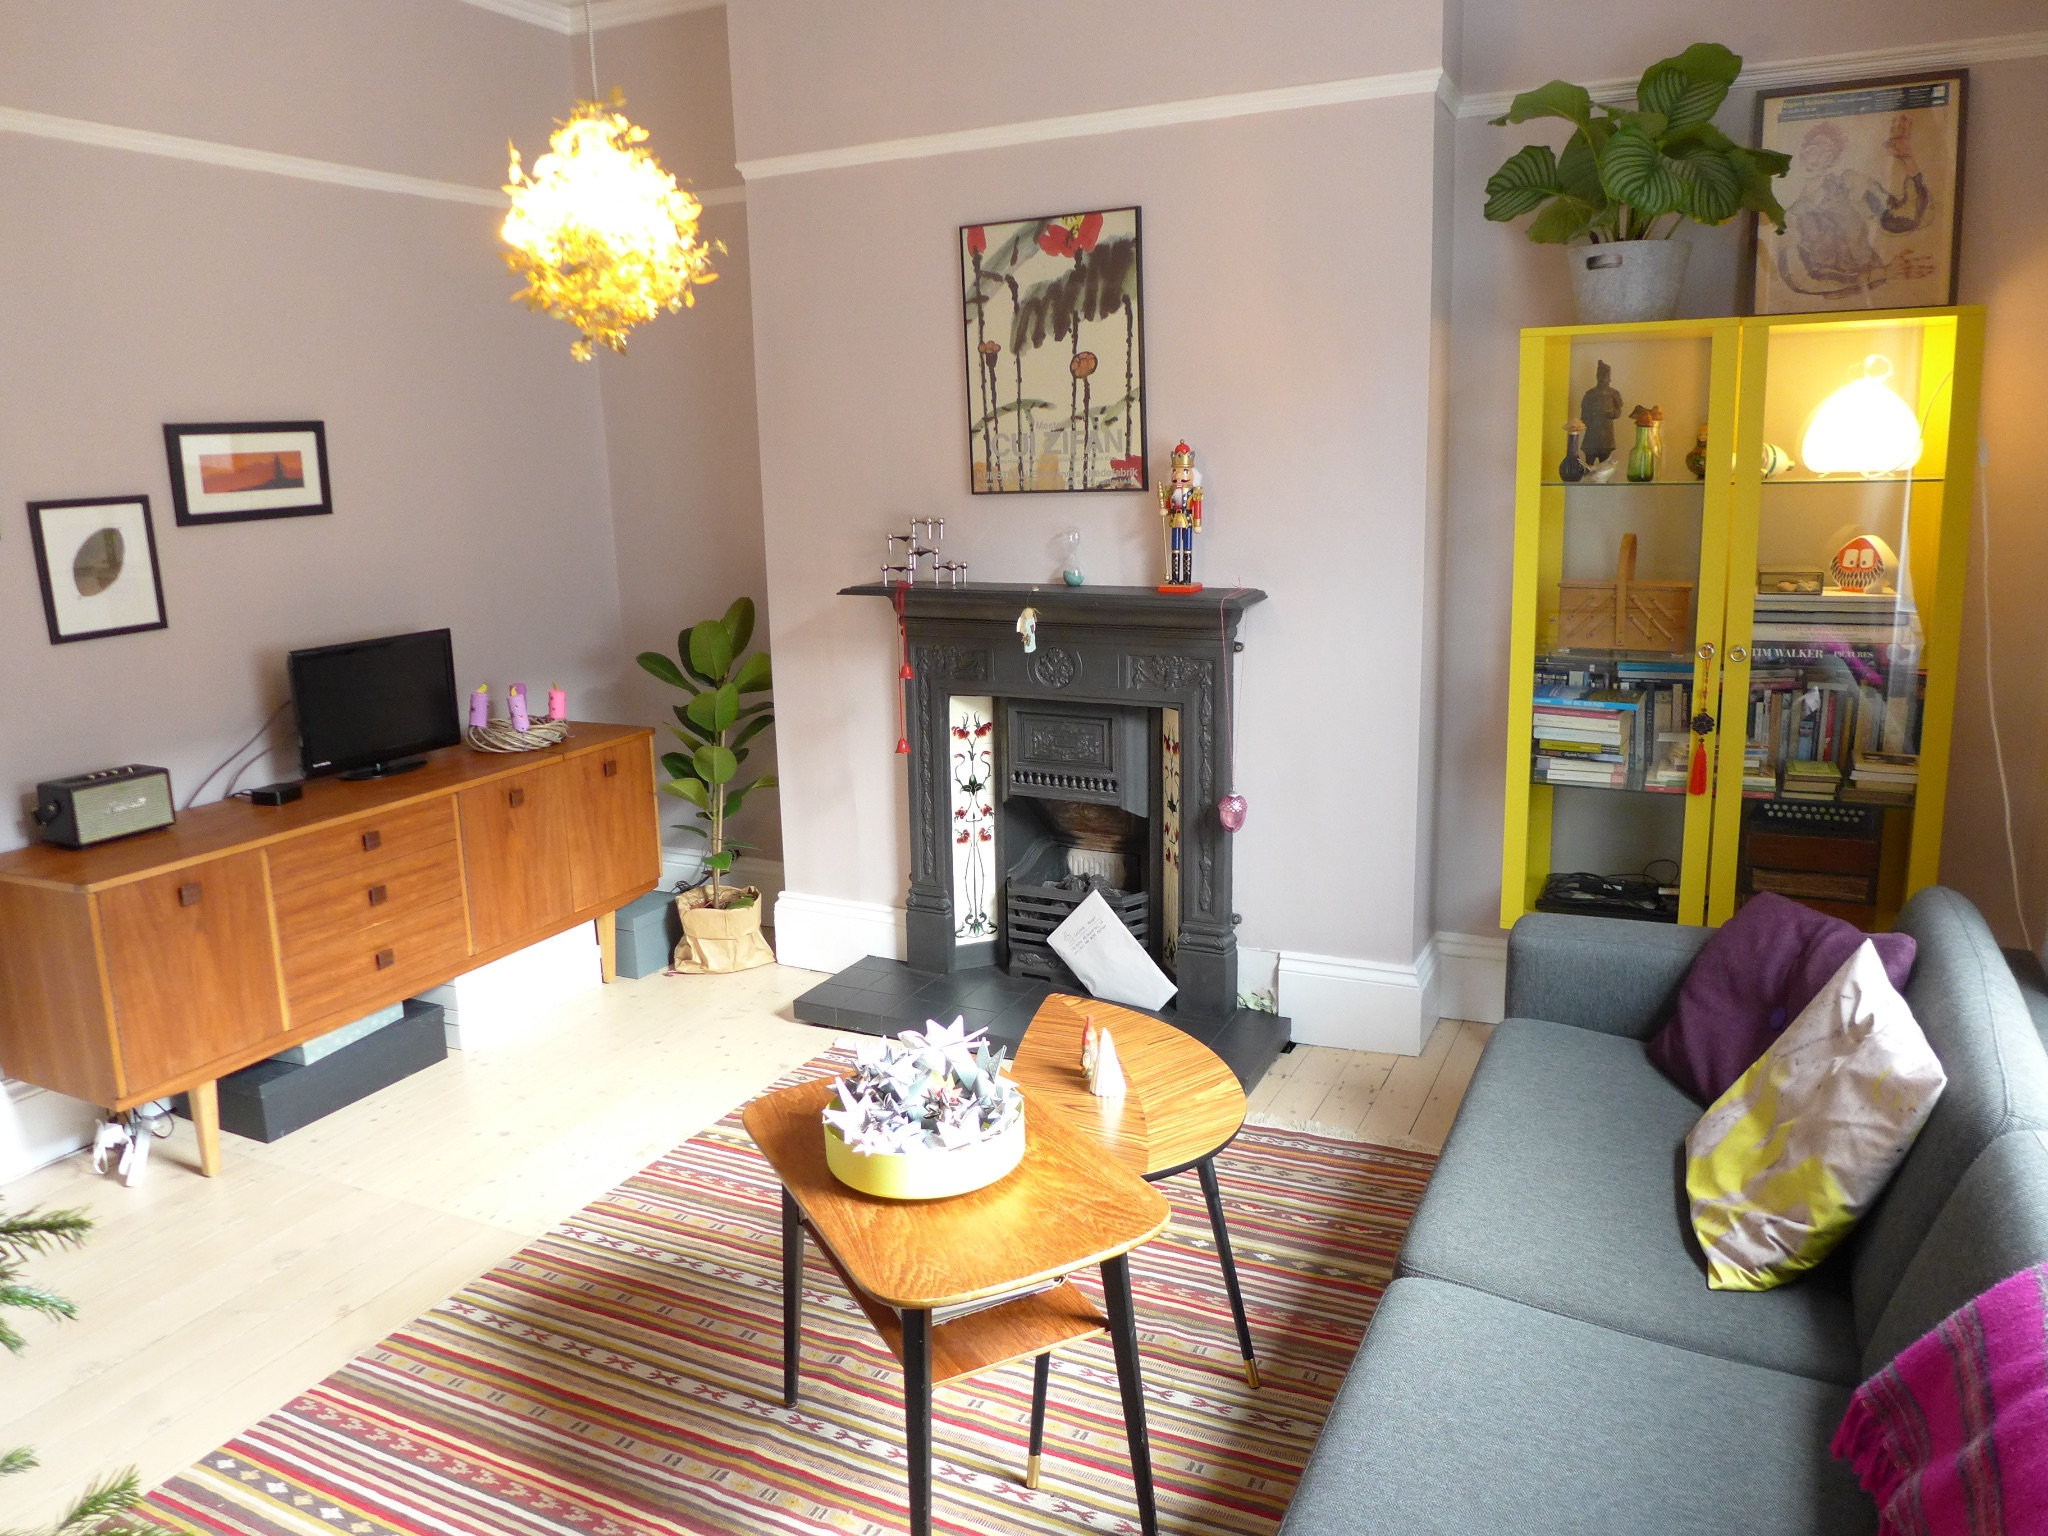 4 bedroom end terraced house For Sale in Calderdale - Photograph 5.